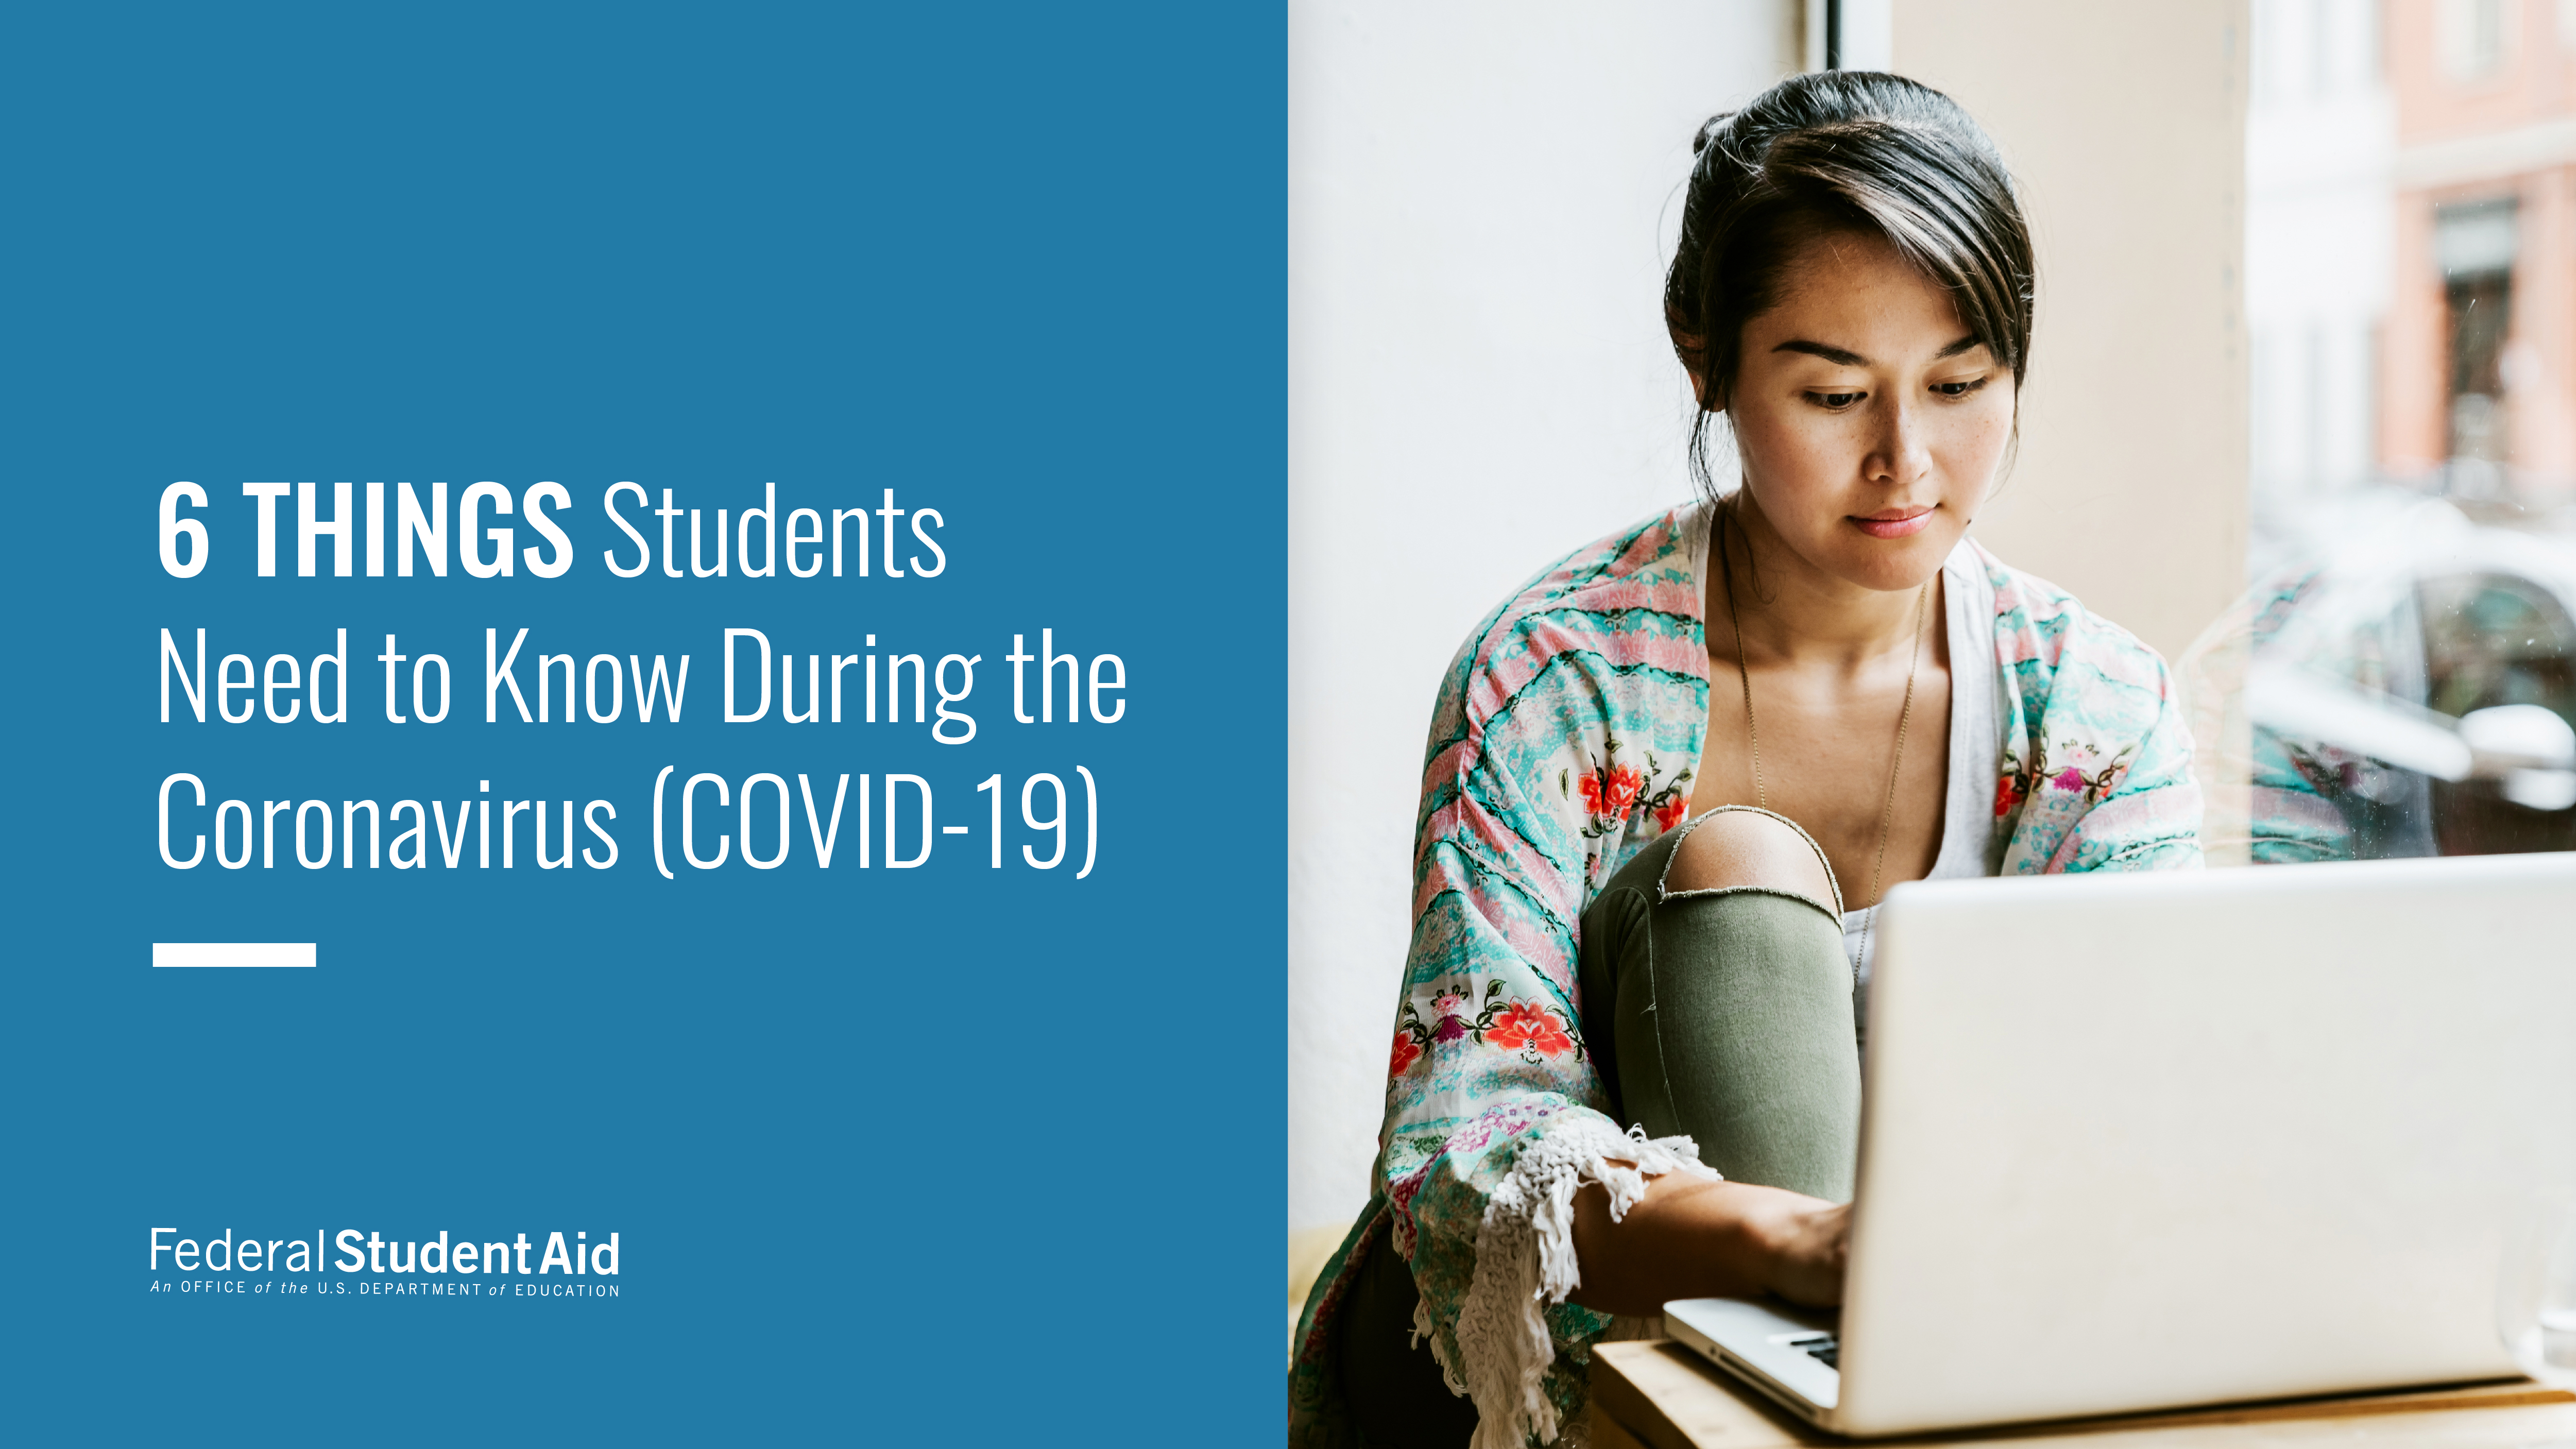 Six Things Students Need to Know During the Coronavirus (COVID-19).  Woman sitting looking at her laptop.